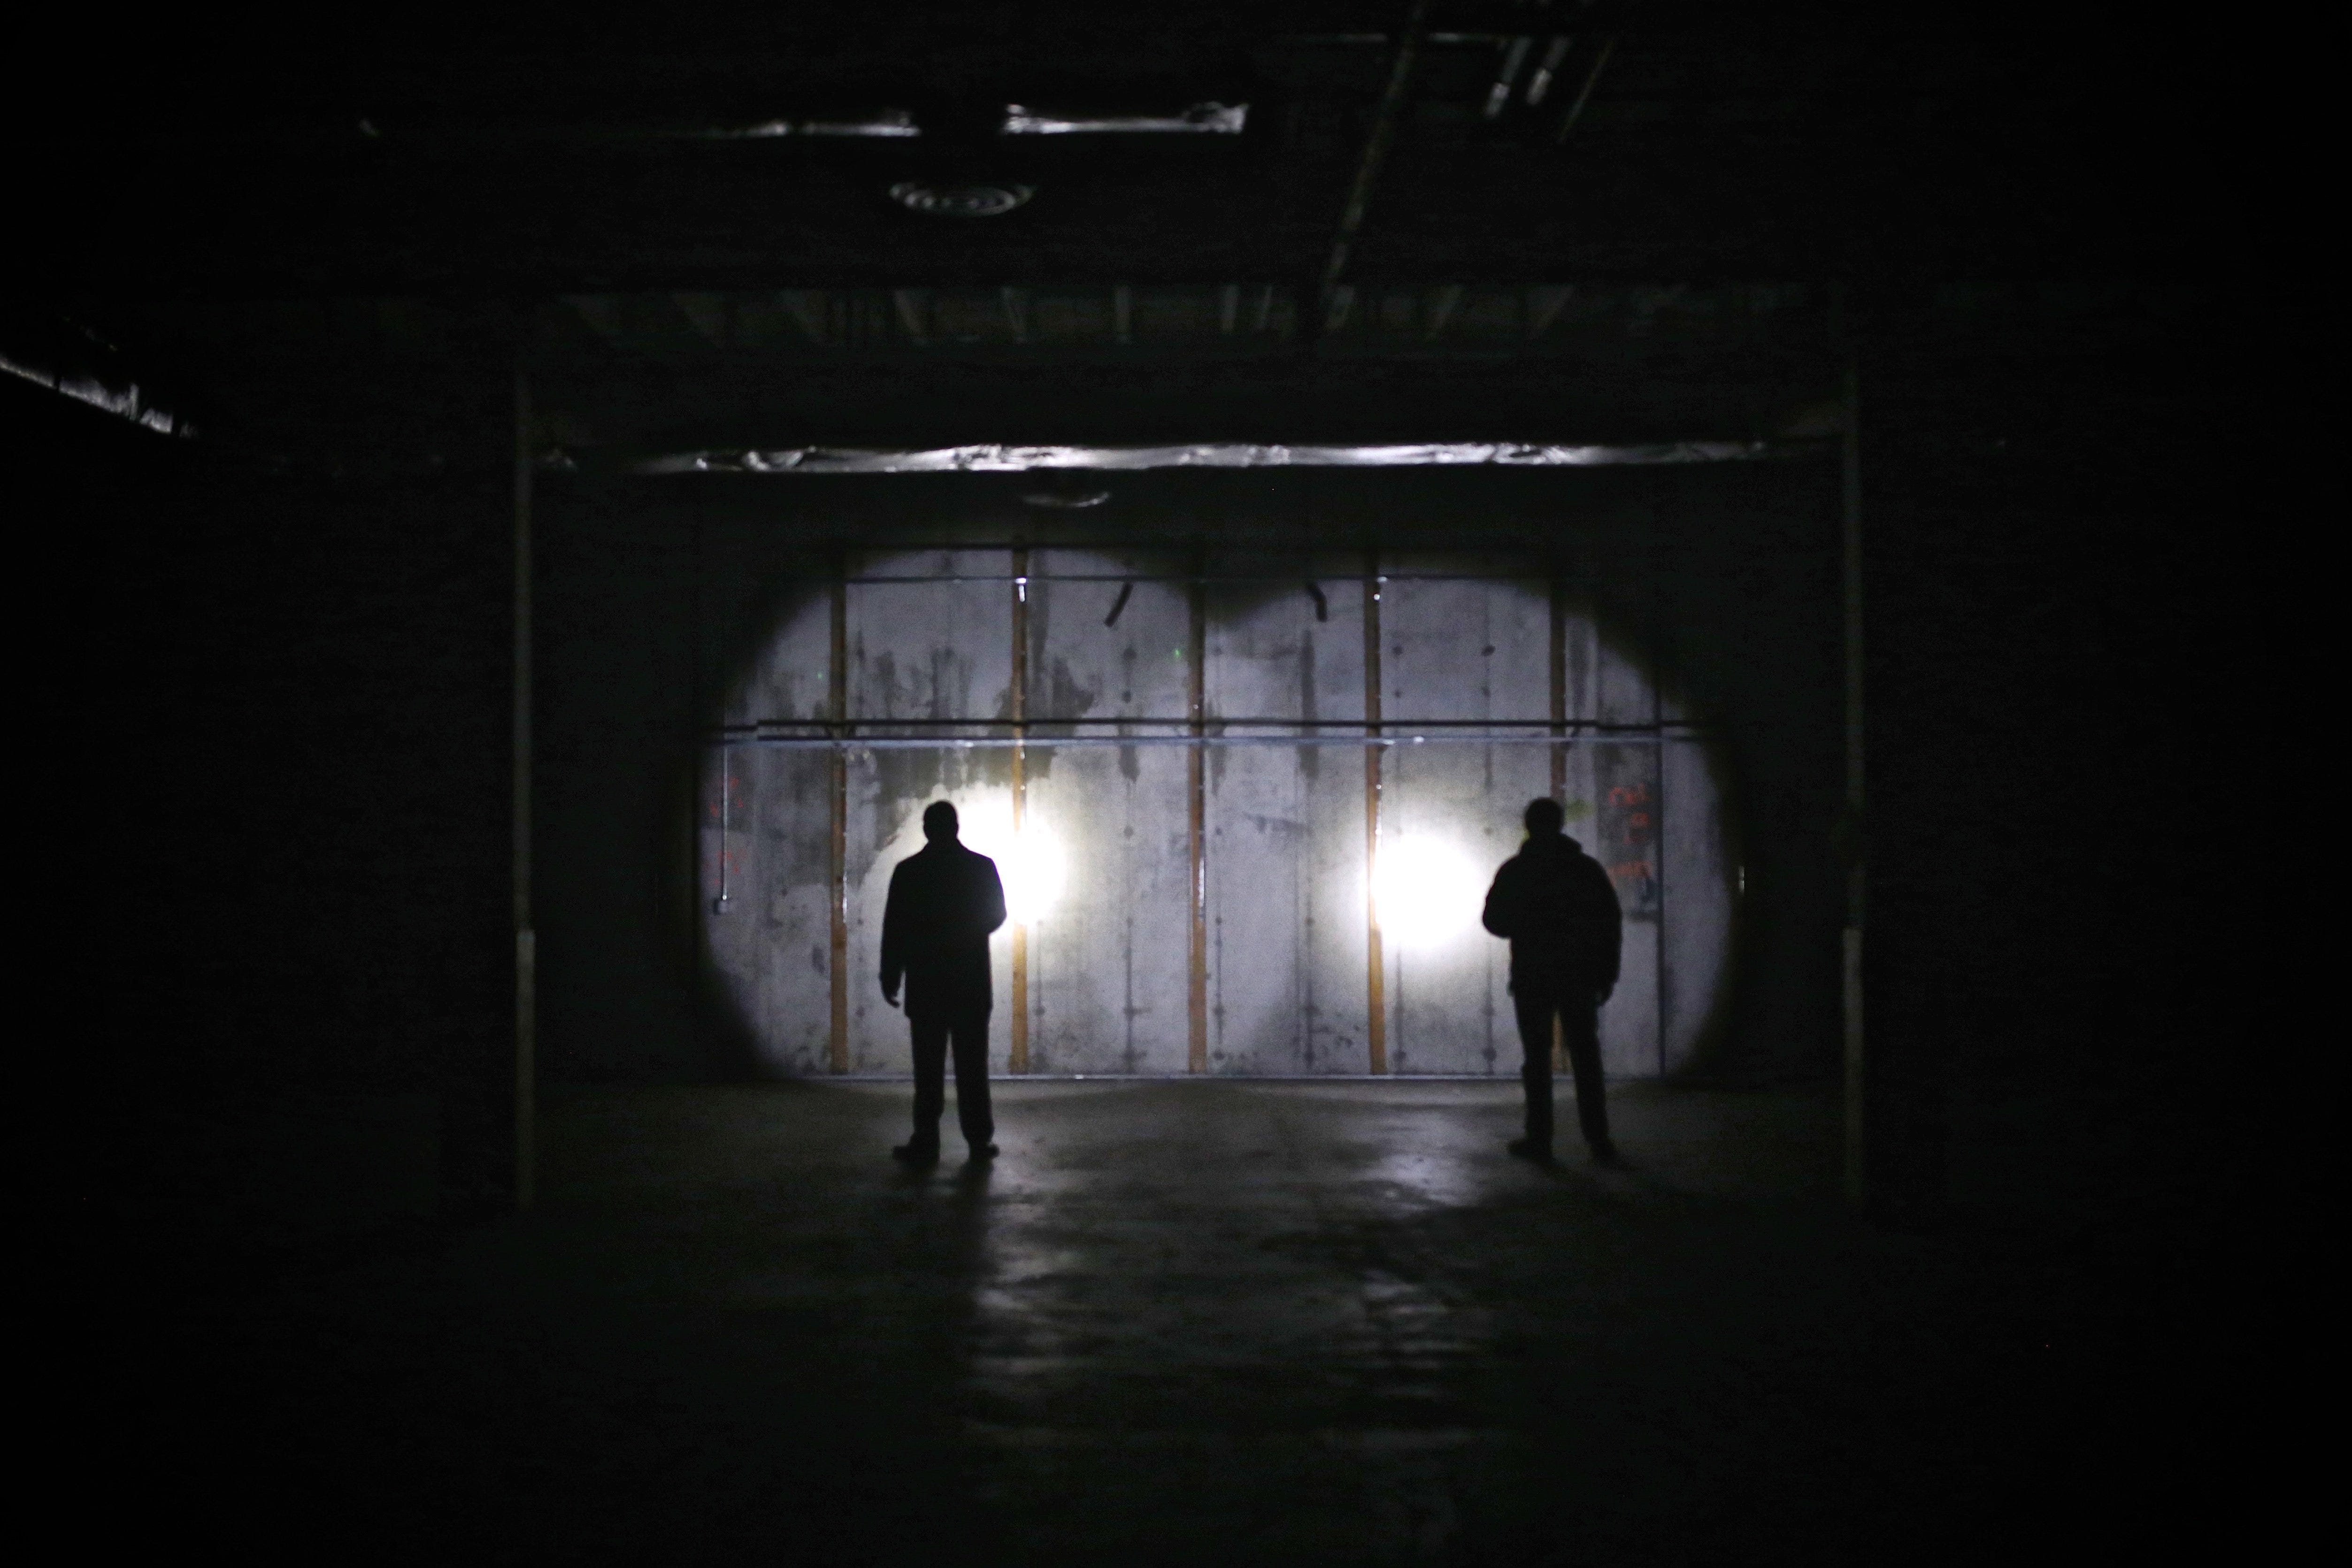 Security guards and media members explore one of the & Northland mall tunnels reveal their secrets